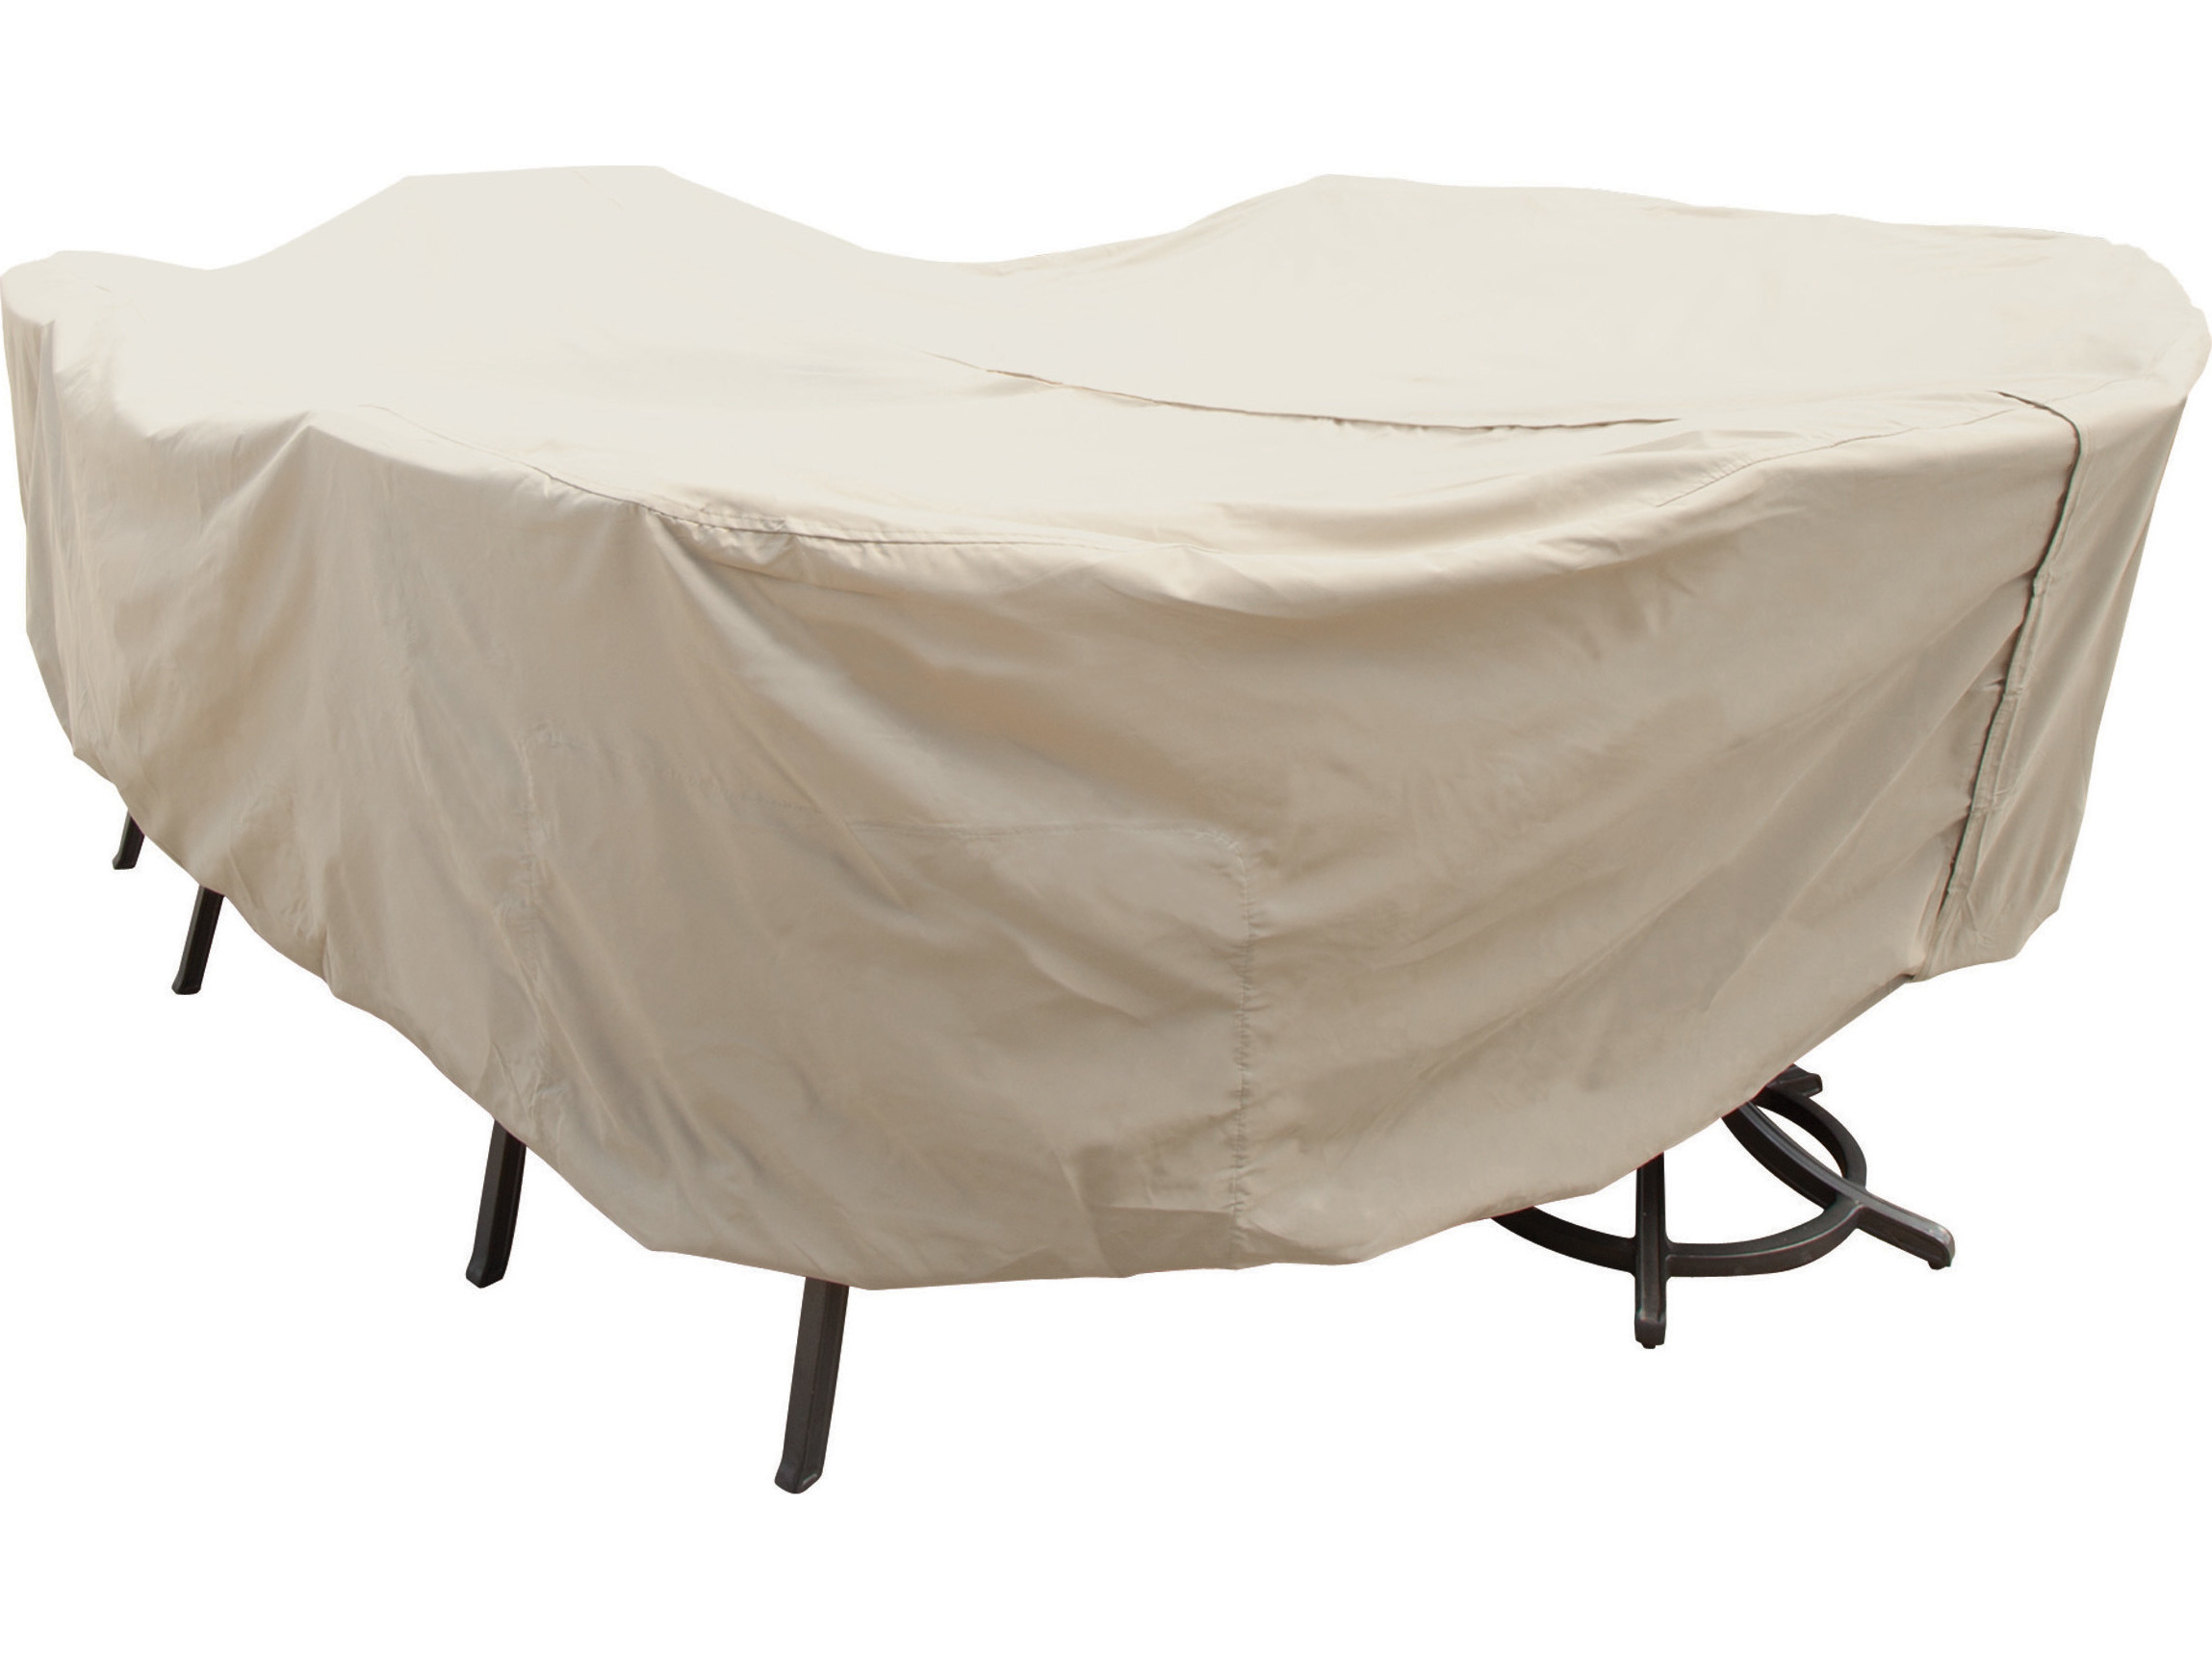 Rectangular patio furniture covers Waterproof Hover To Zoom Patioliving Treasure Garden Xlarge Ovalrectangle Table Chairs Cover With